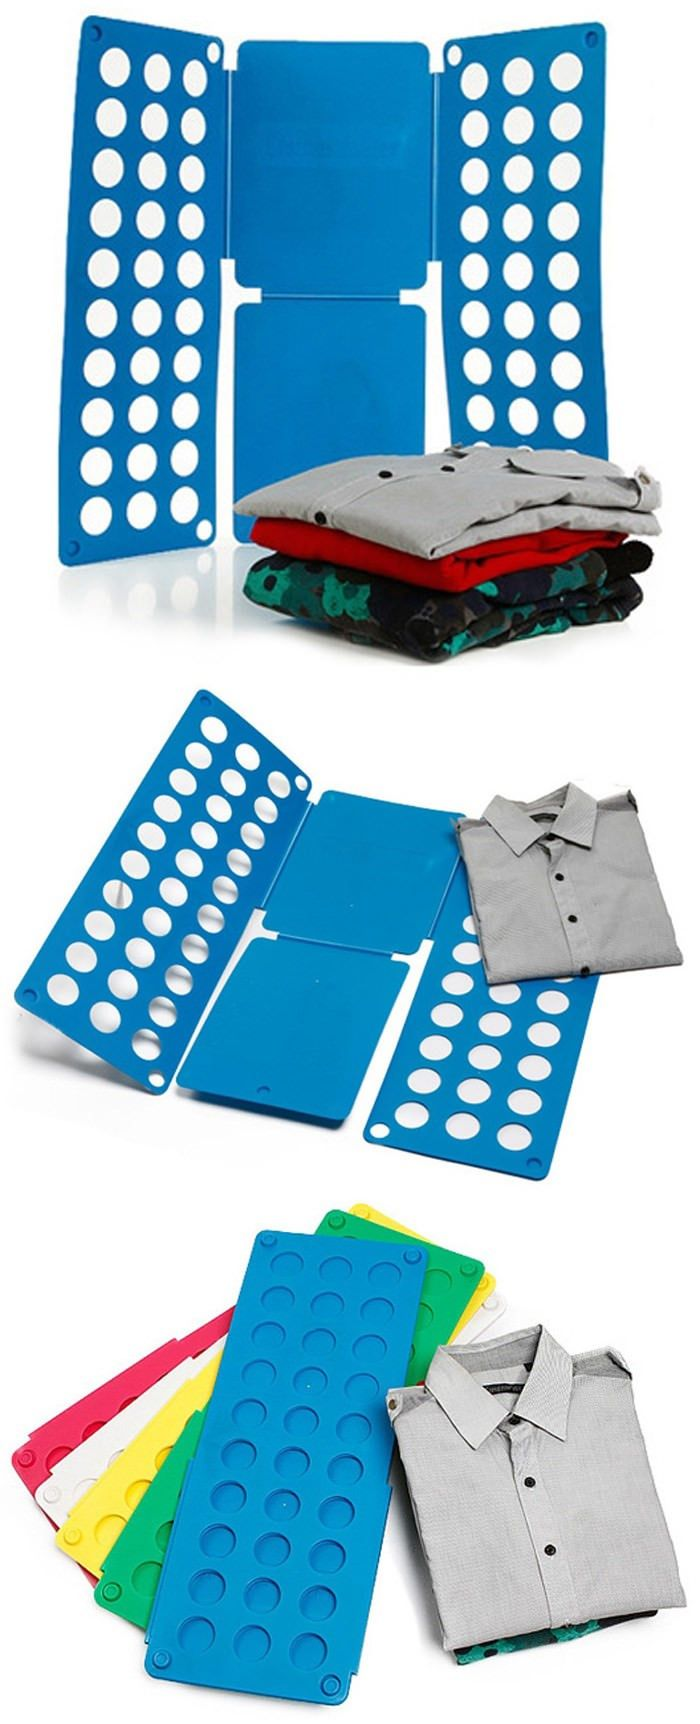 Practical Adjustable Garment Folding Board Clothes Folder Flip